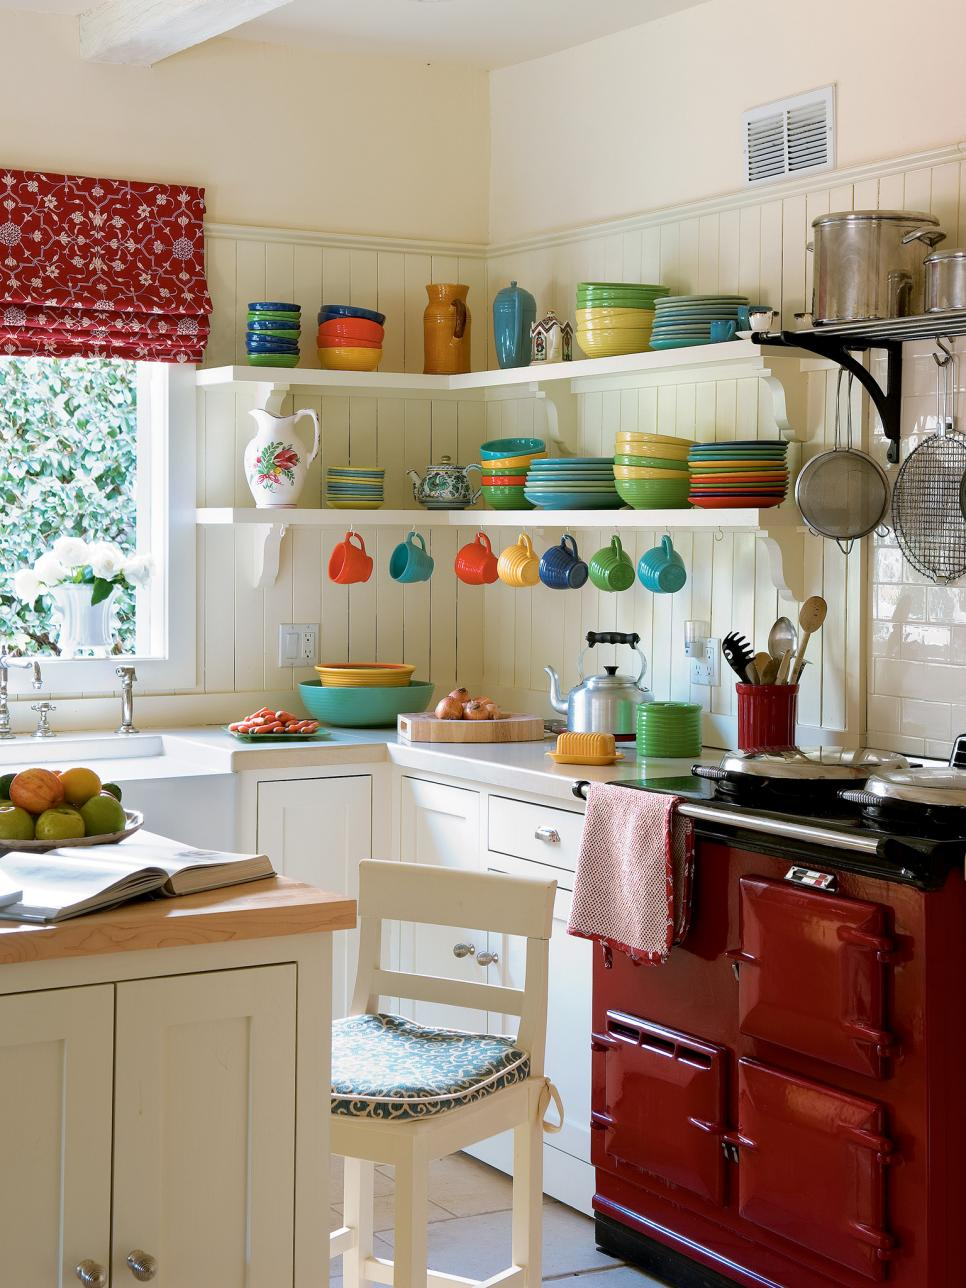 Ideas For Small Kitchen Cabinets Pictures Of Small Kitchen Design Ideas From Hgtv  Hgtv